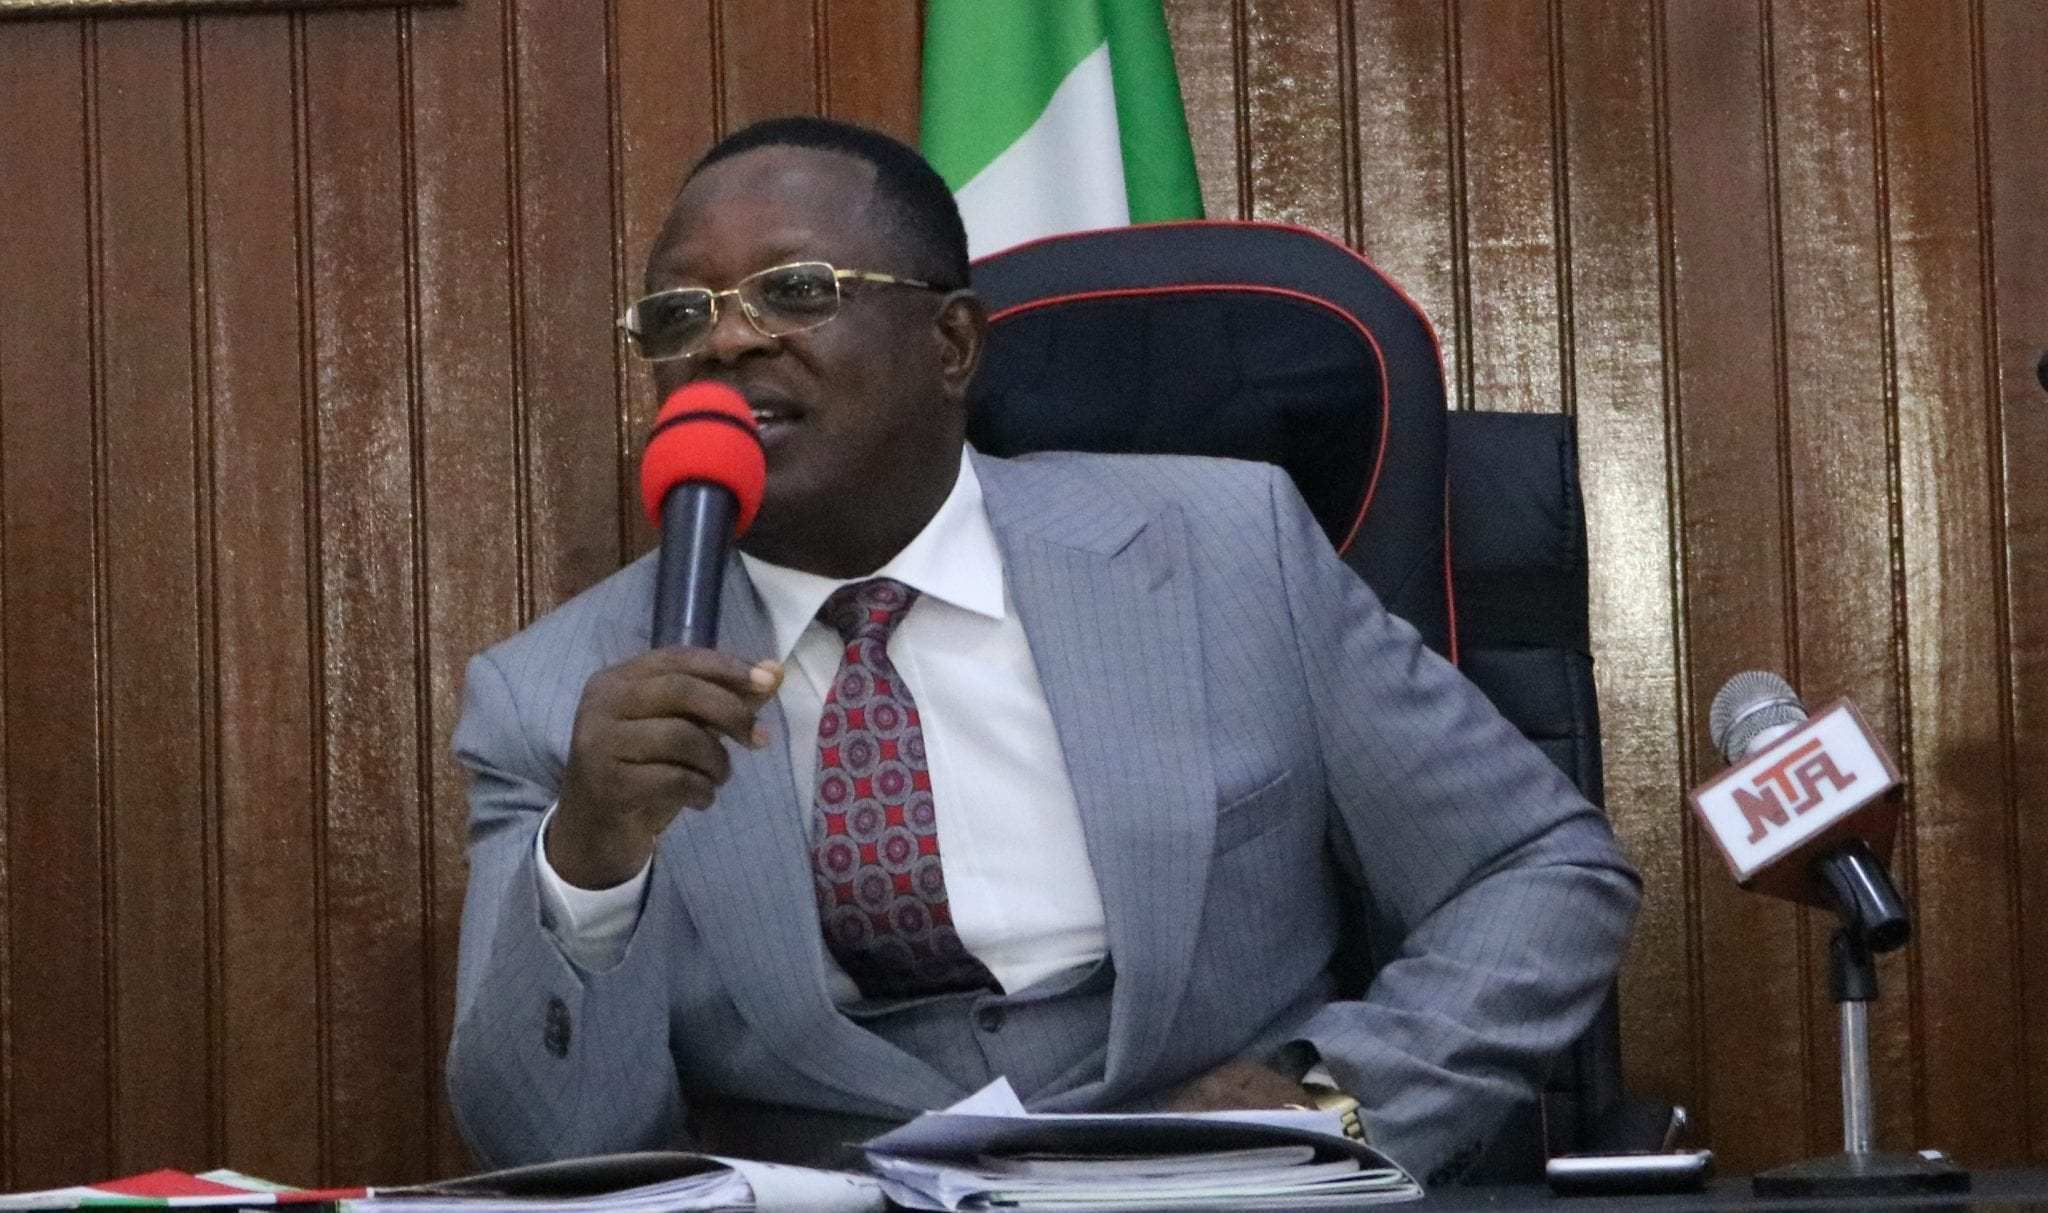 The Ebonyi State Independent Electoral Commission (EBSIEC) has fixed Aug. 15 for the Local Government Area (LGA) elections in the state. Chief Jossy Eze, Chairman of the Commission, disclosed this on Wednesday during a meeting with representatives of political parties, security agencies and other stakeholders. He gave an assurance that the exercise would be transparent […]